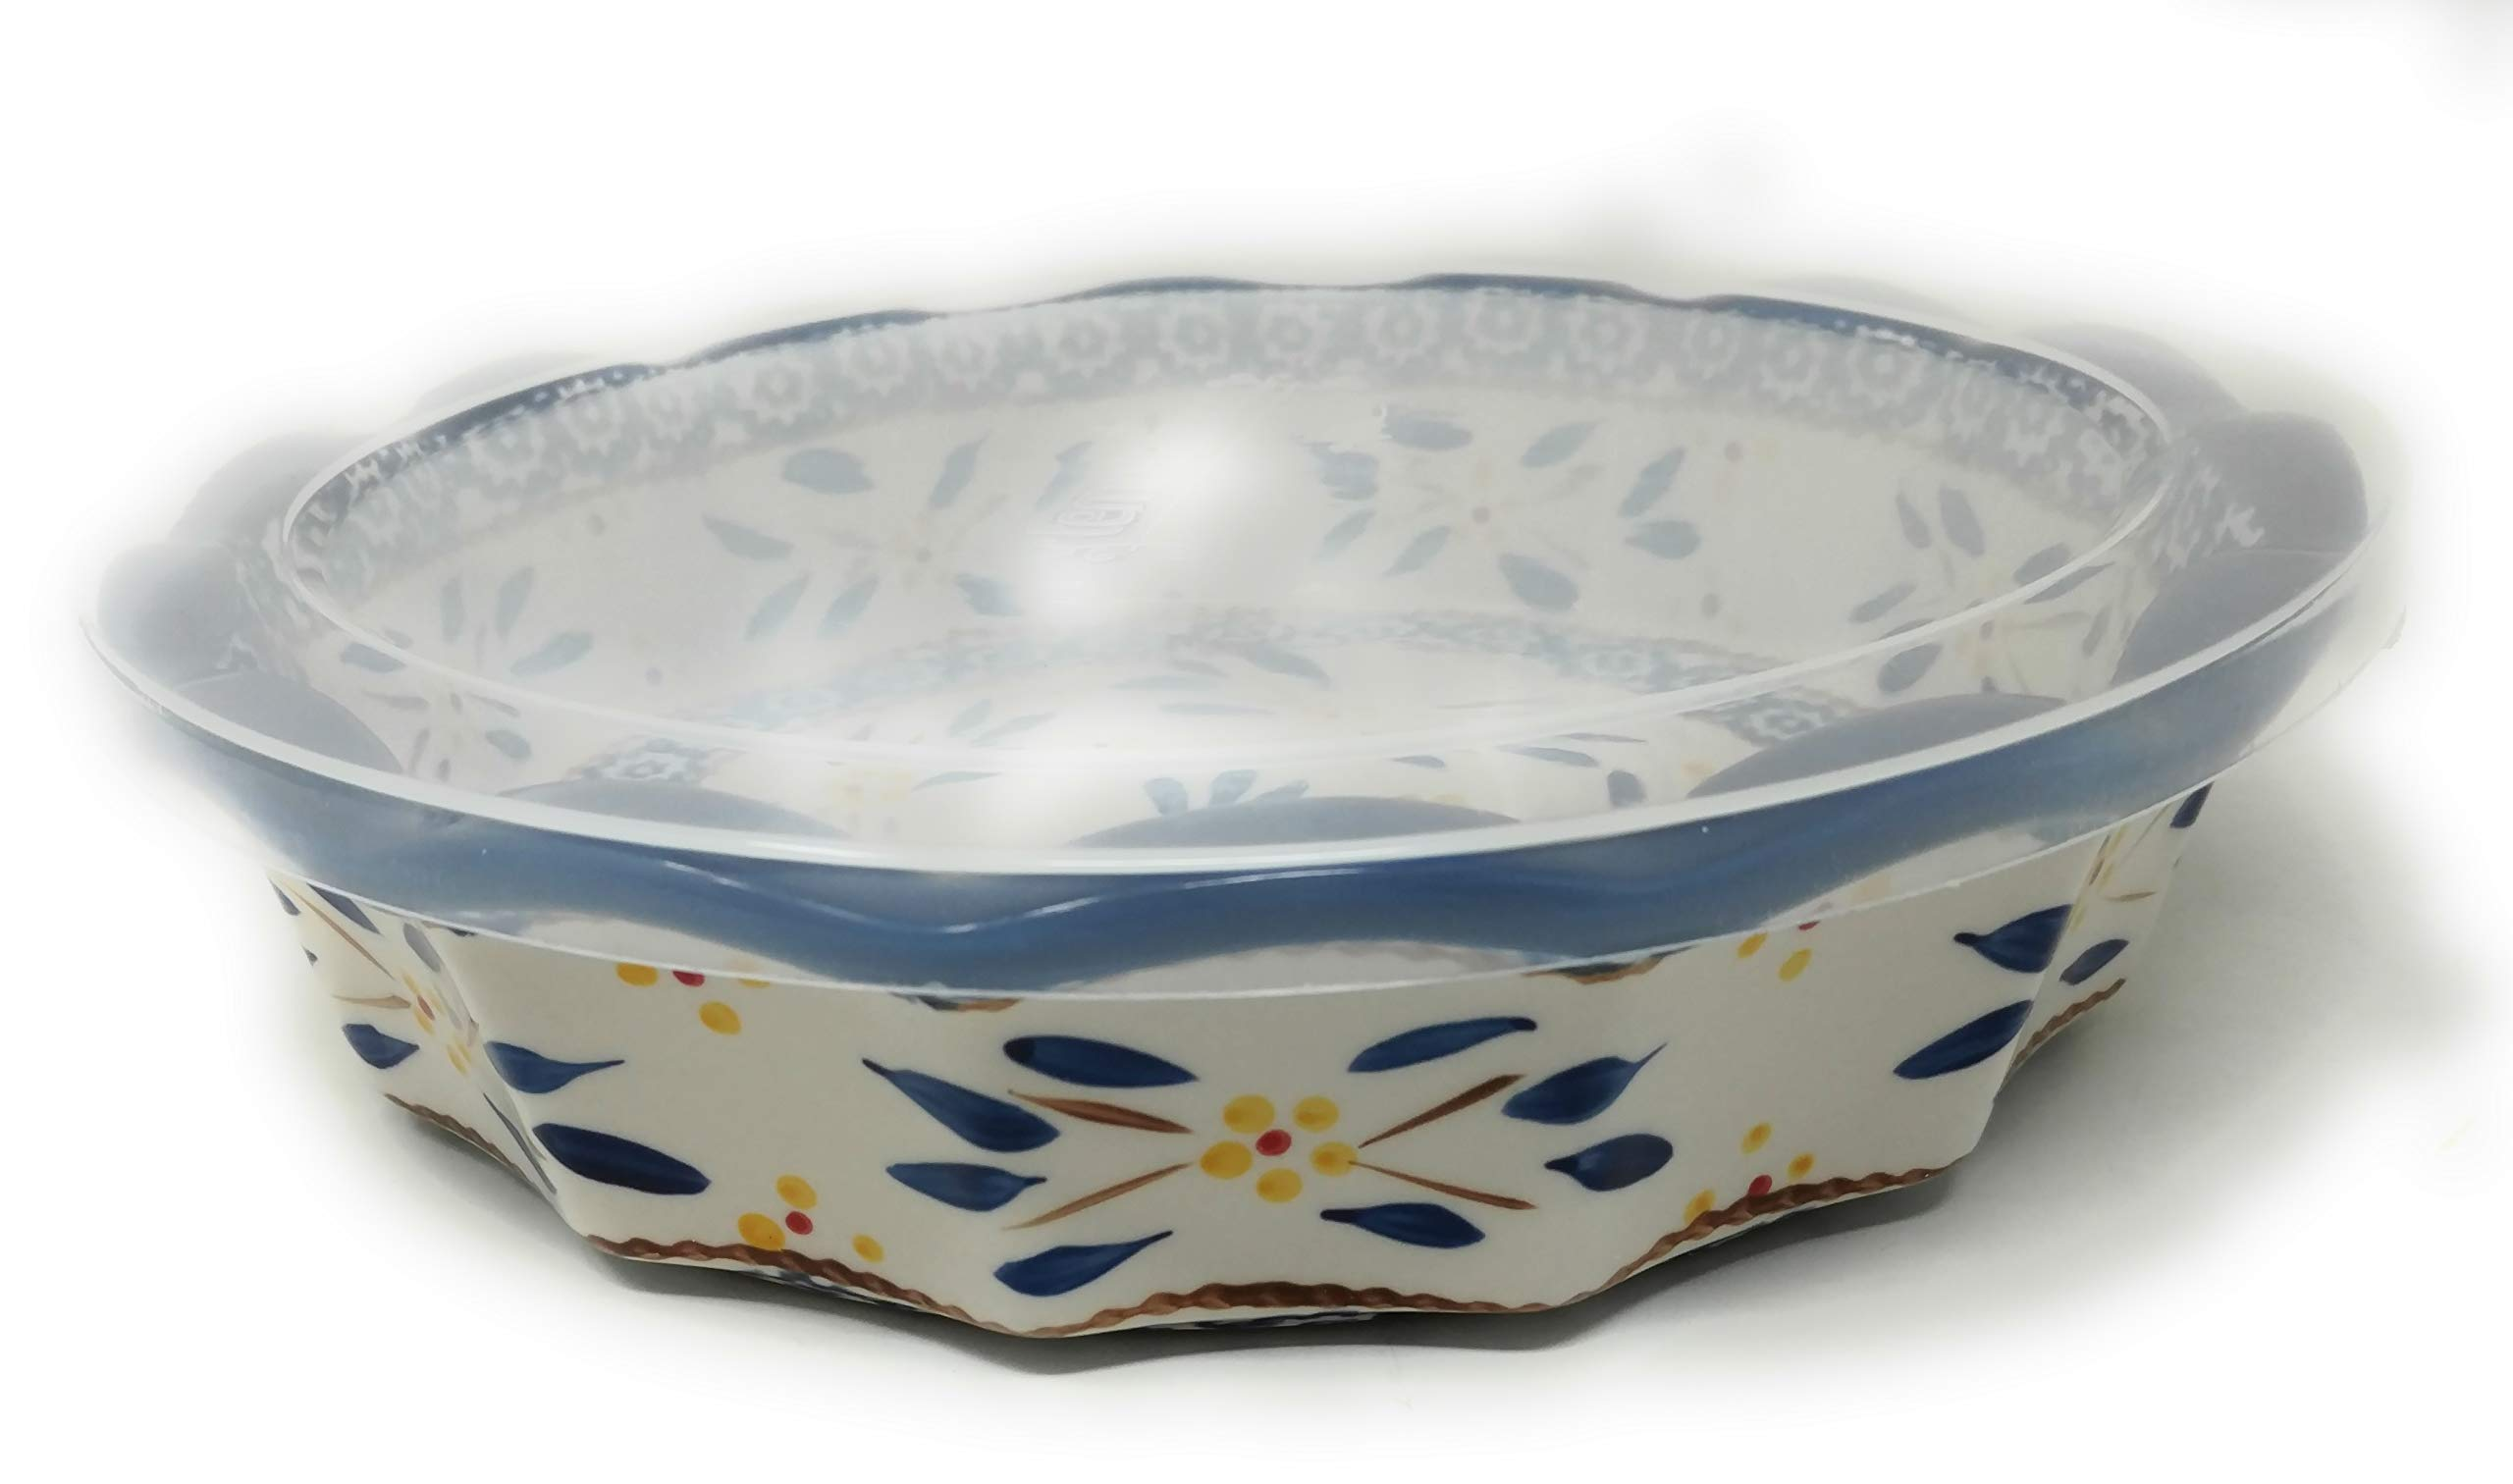 Temp-tations 10'' x 2.25'' Pie Pan w/Cover, Scalloped, Deep Dish Pizza or Quiche (Old World Blue) by Stoneware (Image #4)